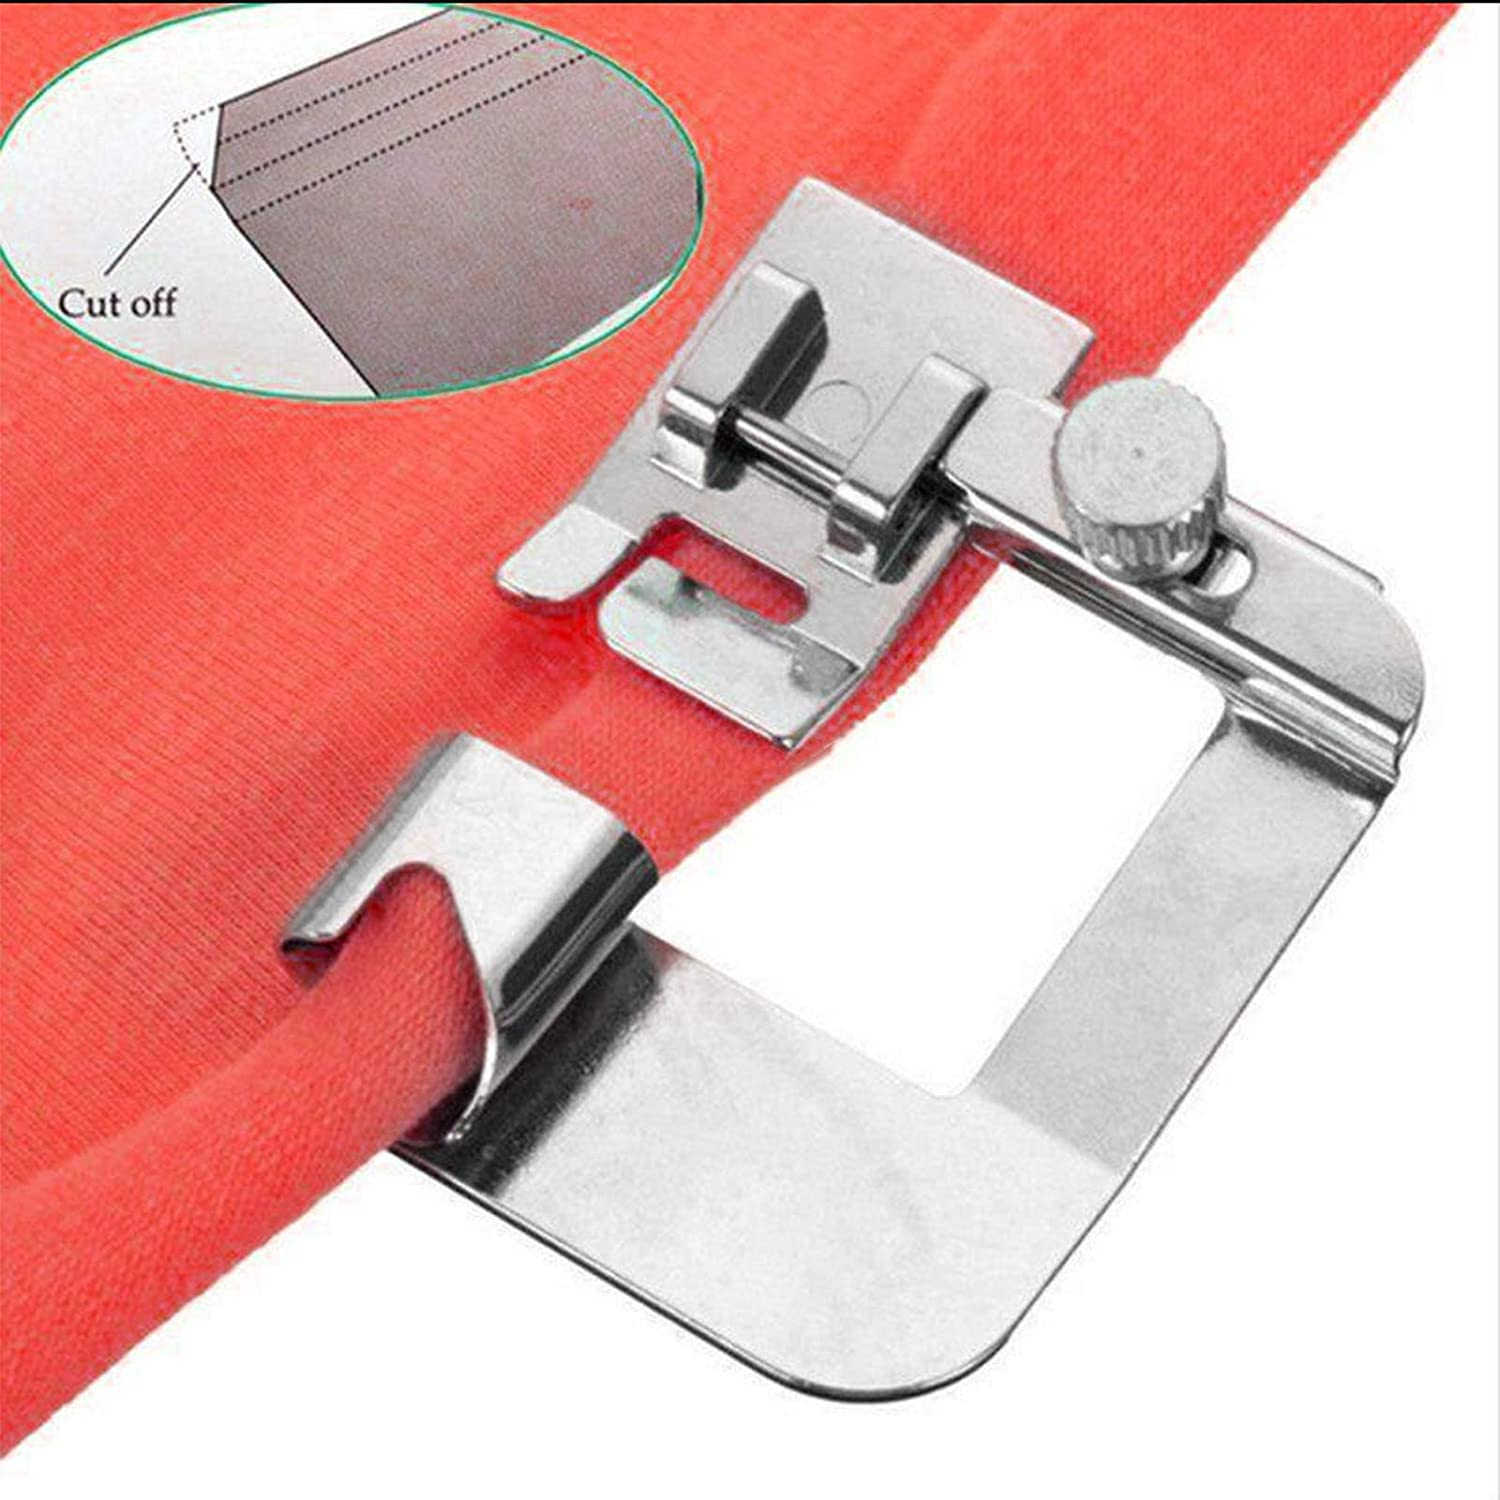 Low Shank Adapter Snap-On Presser Foot for Singer Brother Toyota New Home Simplicity Janome Kenmore Babylock Elna Most Low Shank Sewing Machine Snap-On Adapter by Windman